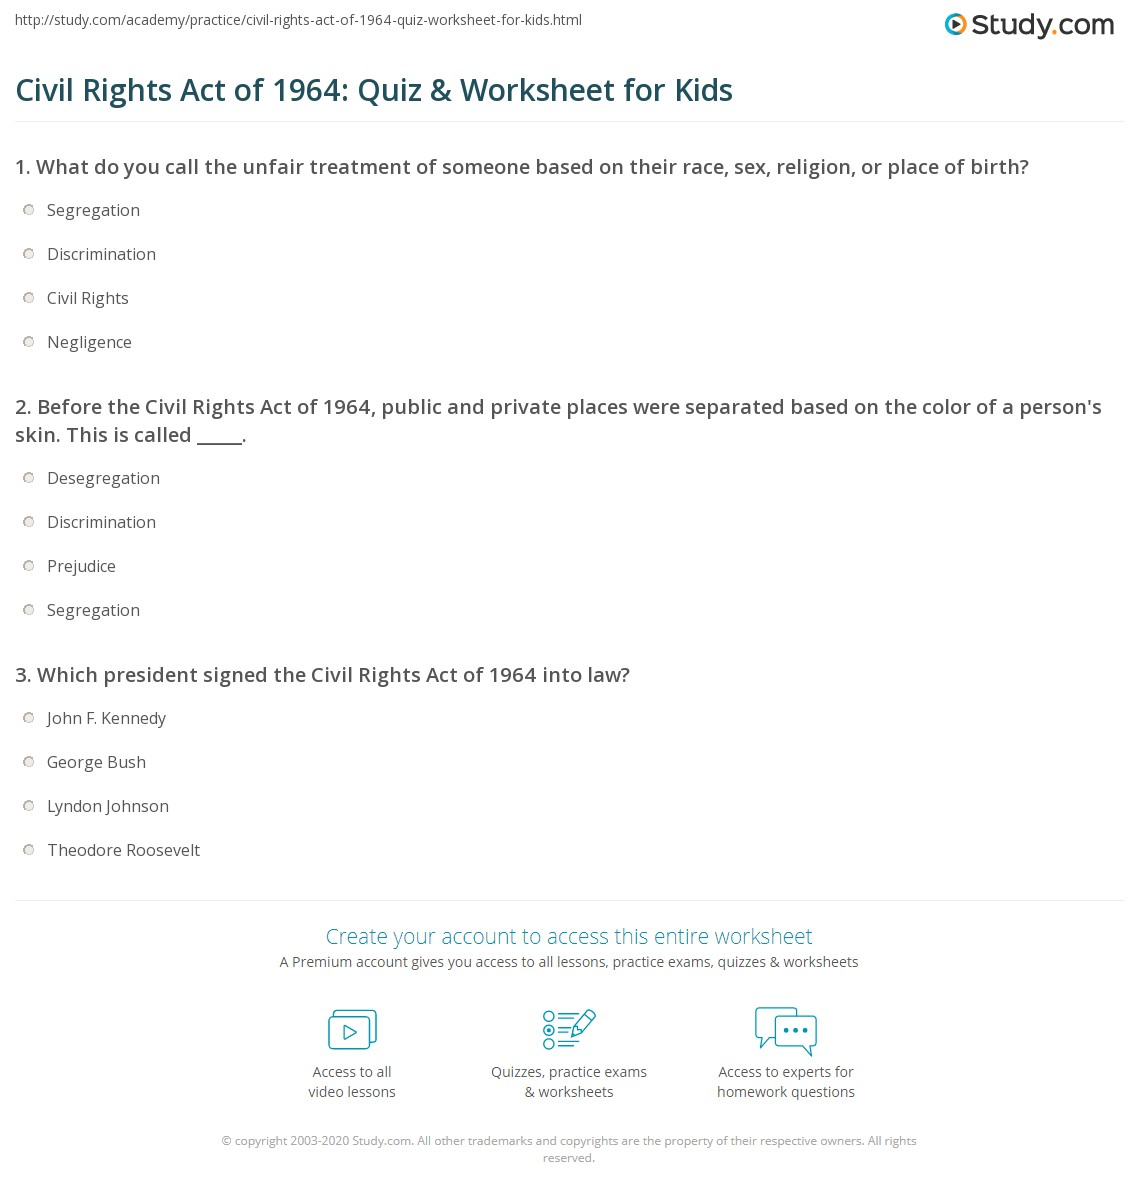 civil rights act of 1964 quiz worksheet for kids study com